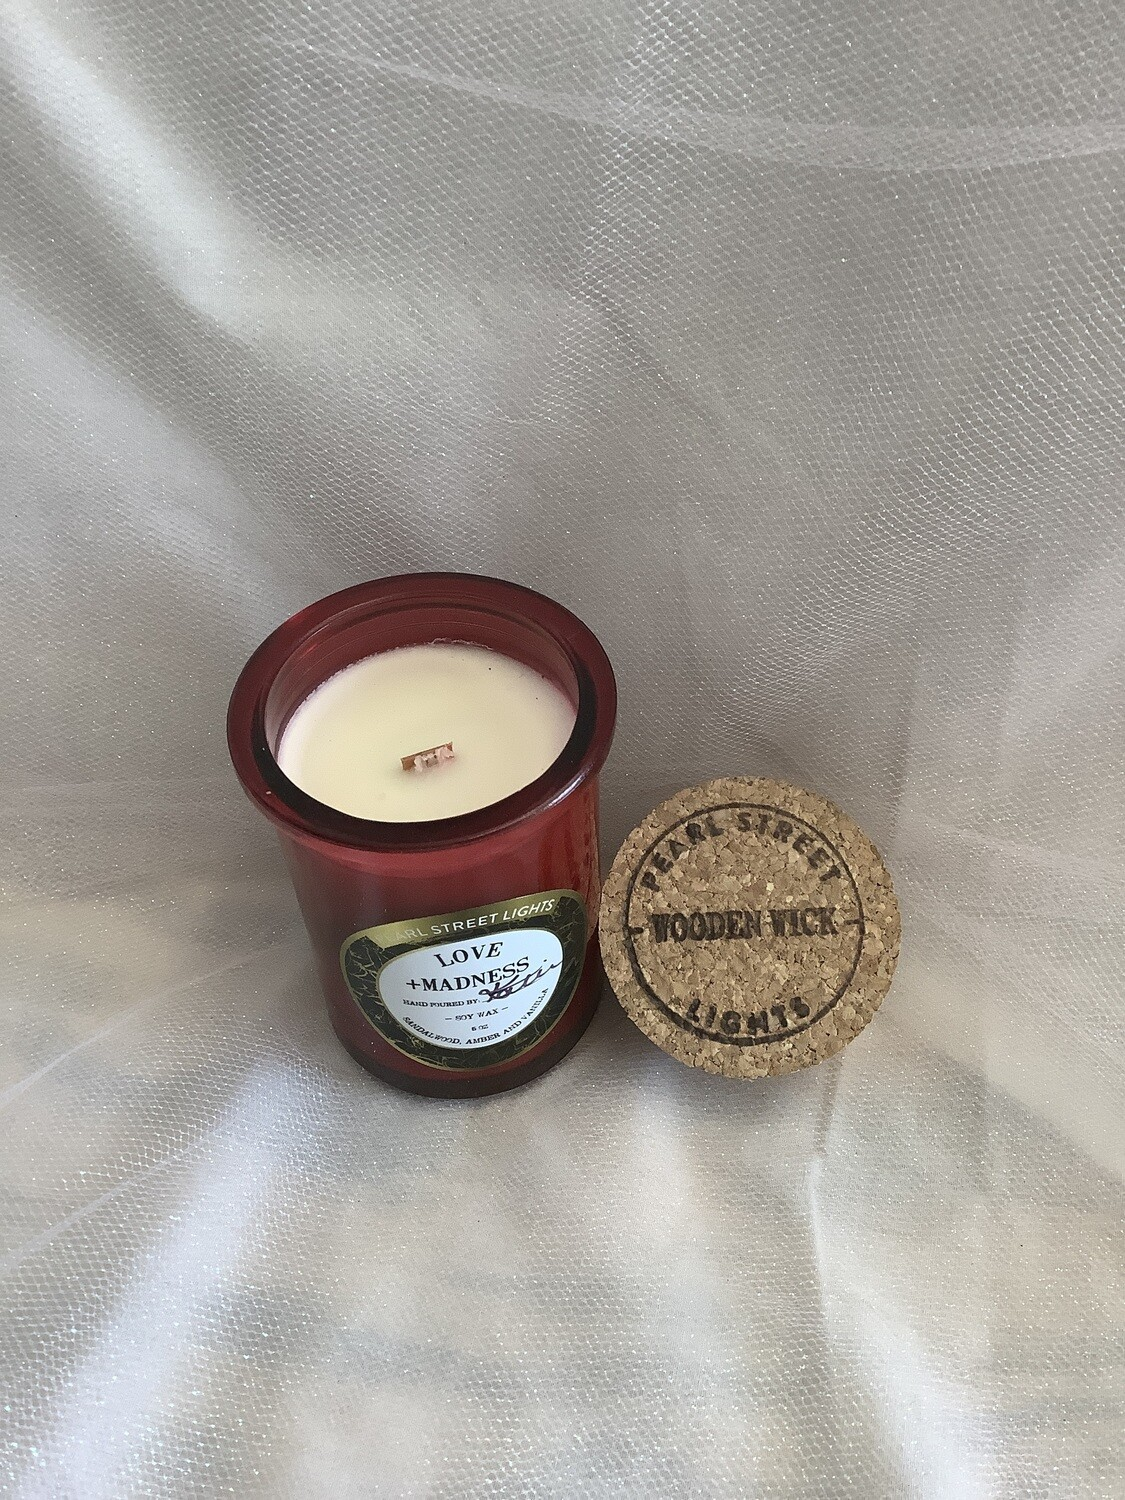 love + madness crackling wooden wick candle